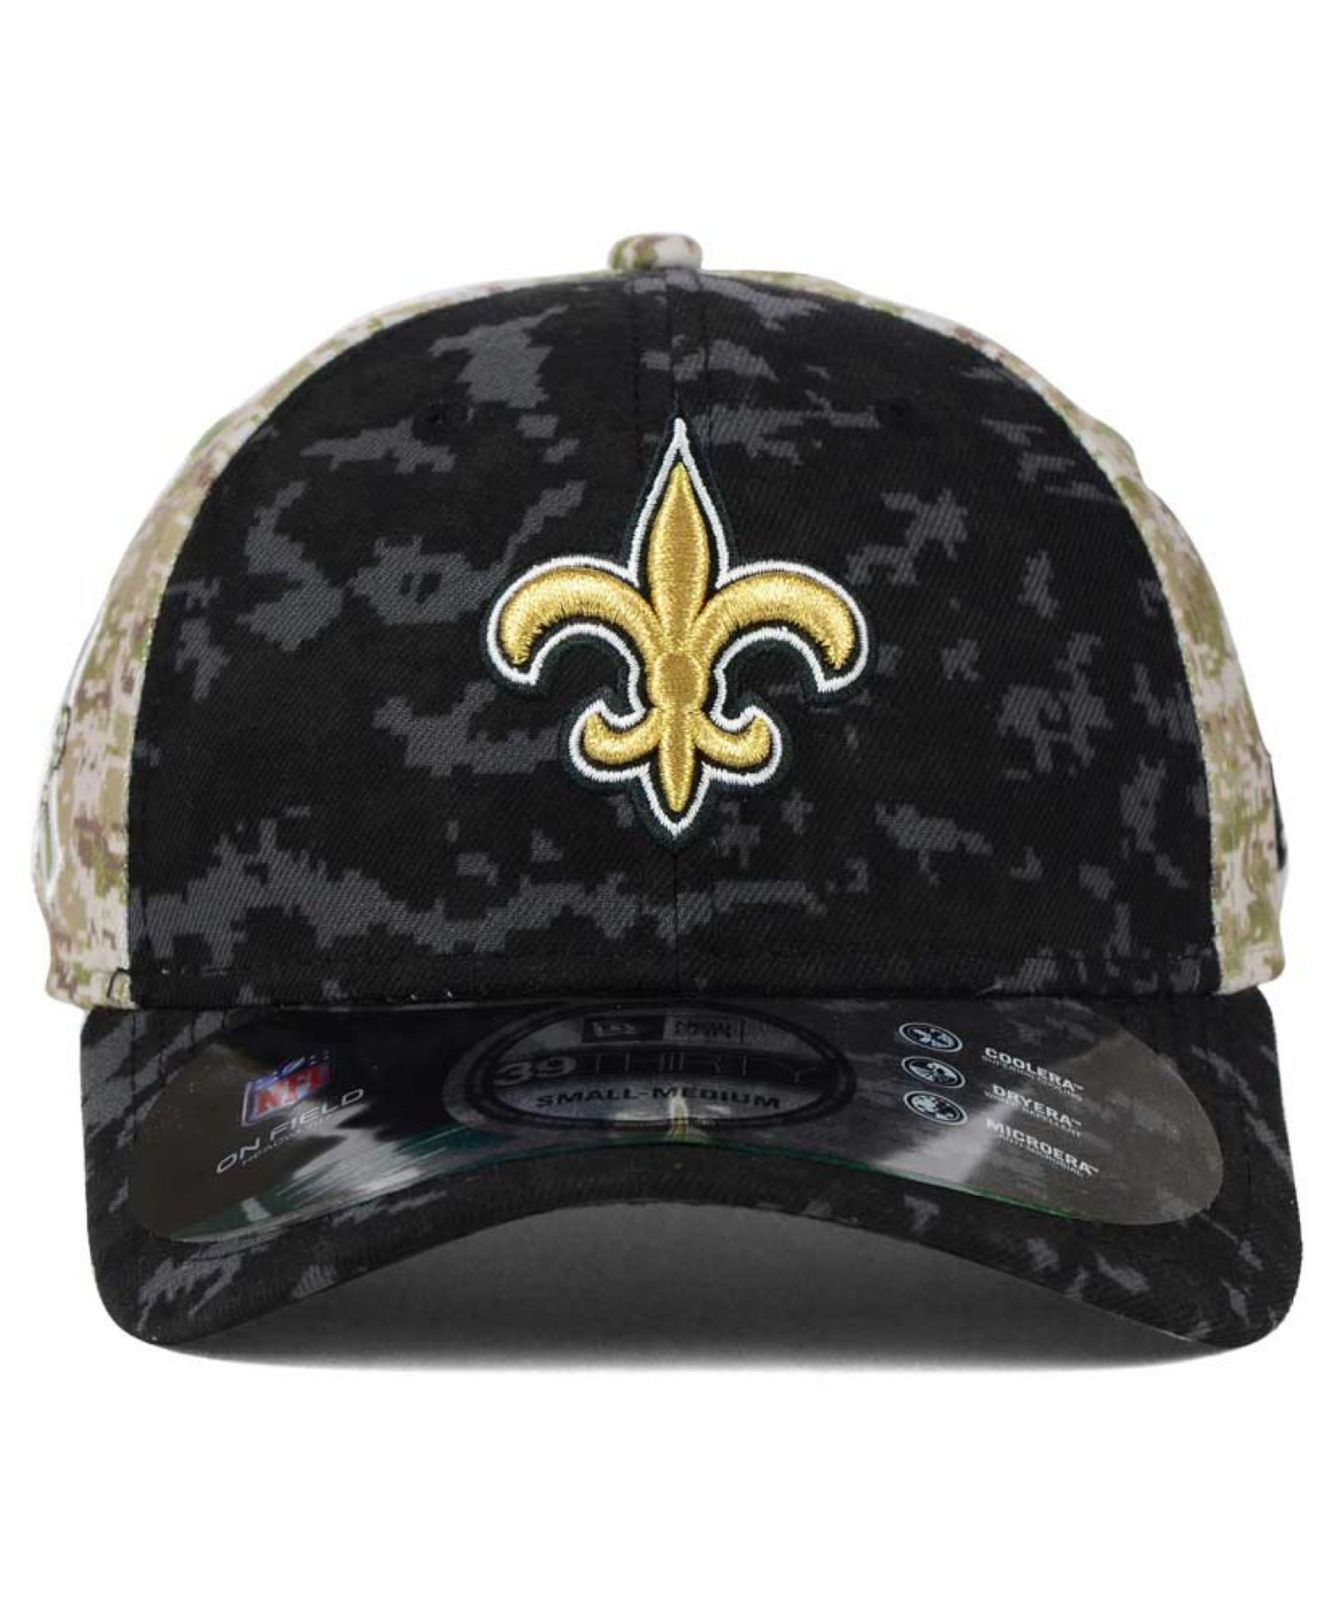 6362446bcff Lyst - KTZ New Orleans Saints Salute To Service 39thirty Cap in ...